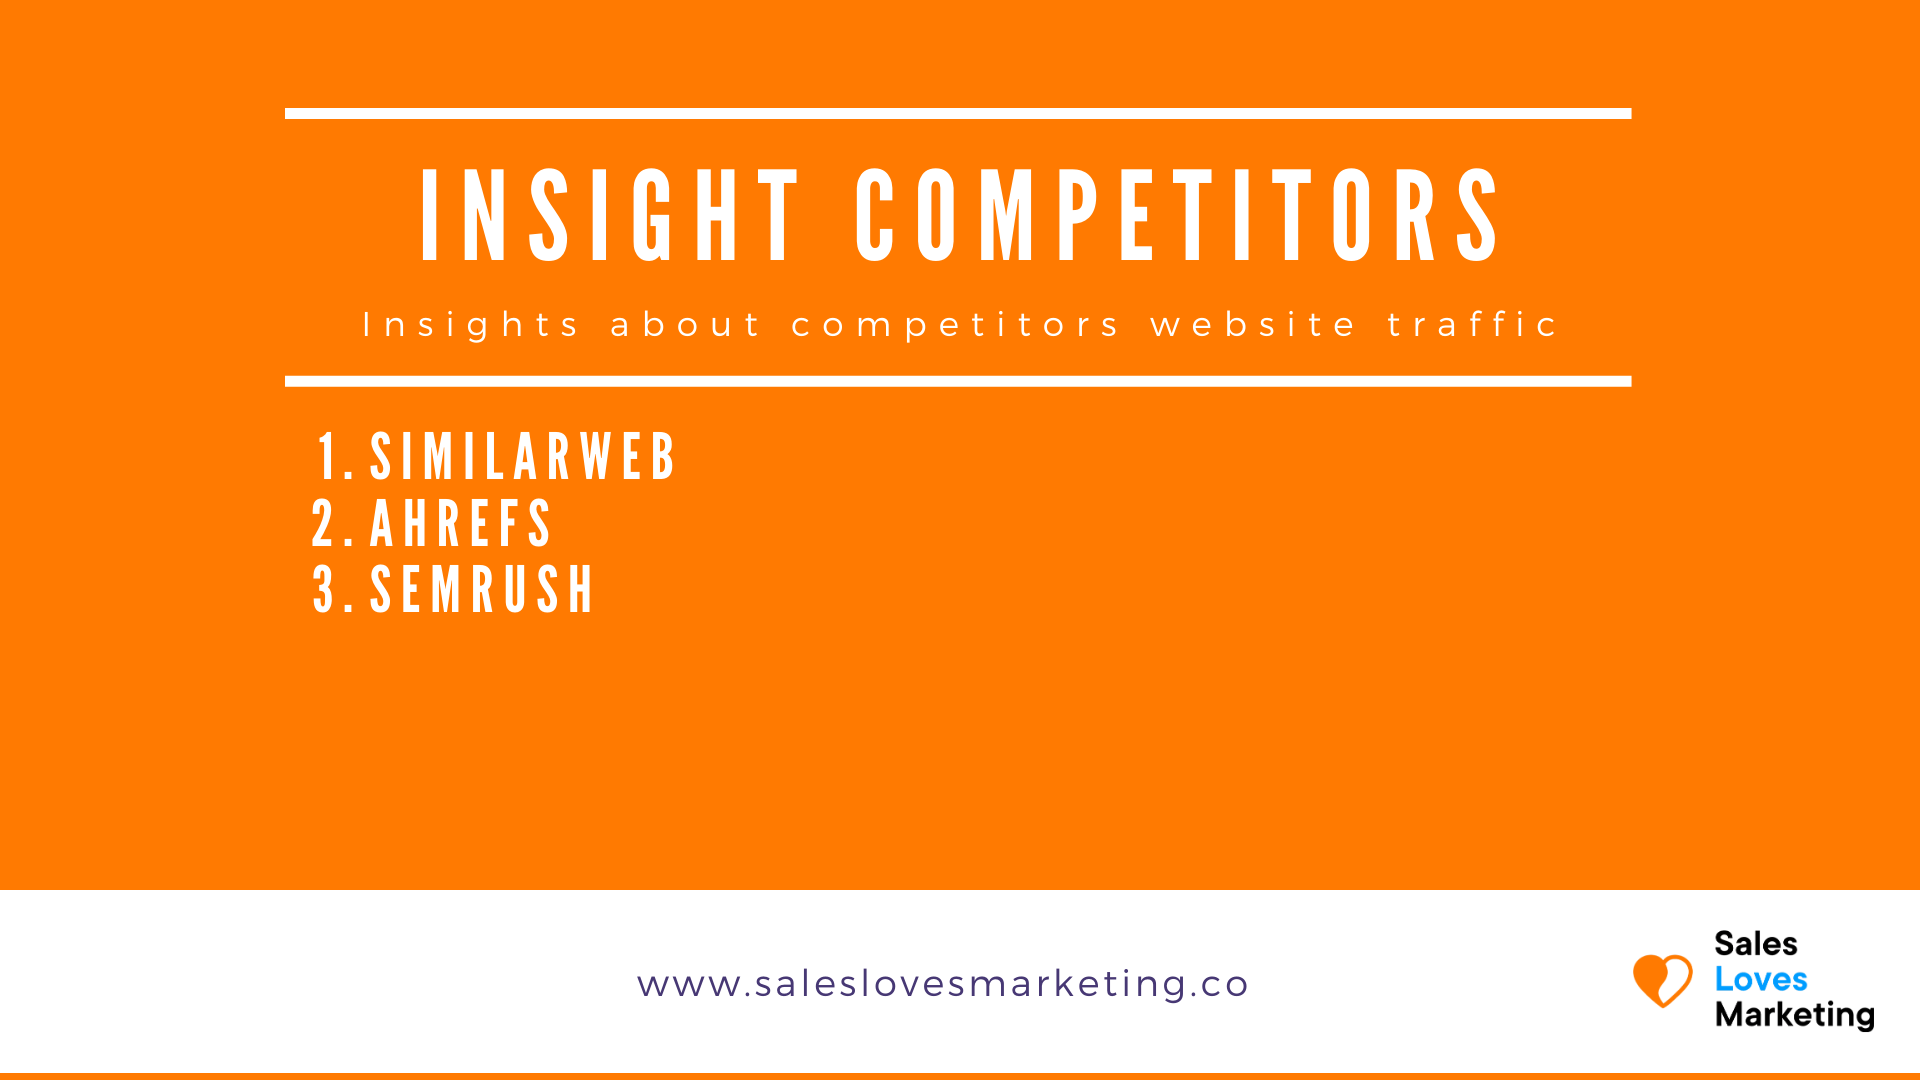 Find out where your competitors website traffic is coming from with the right tools